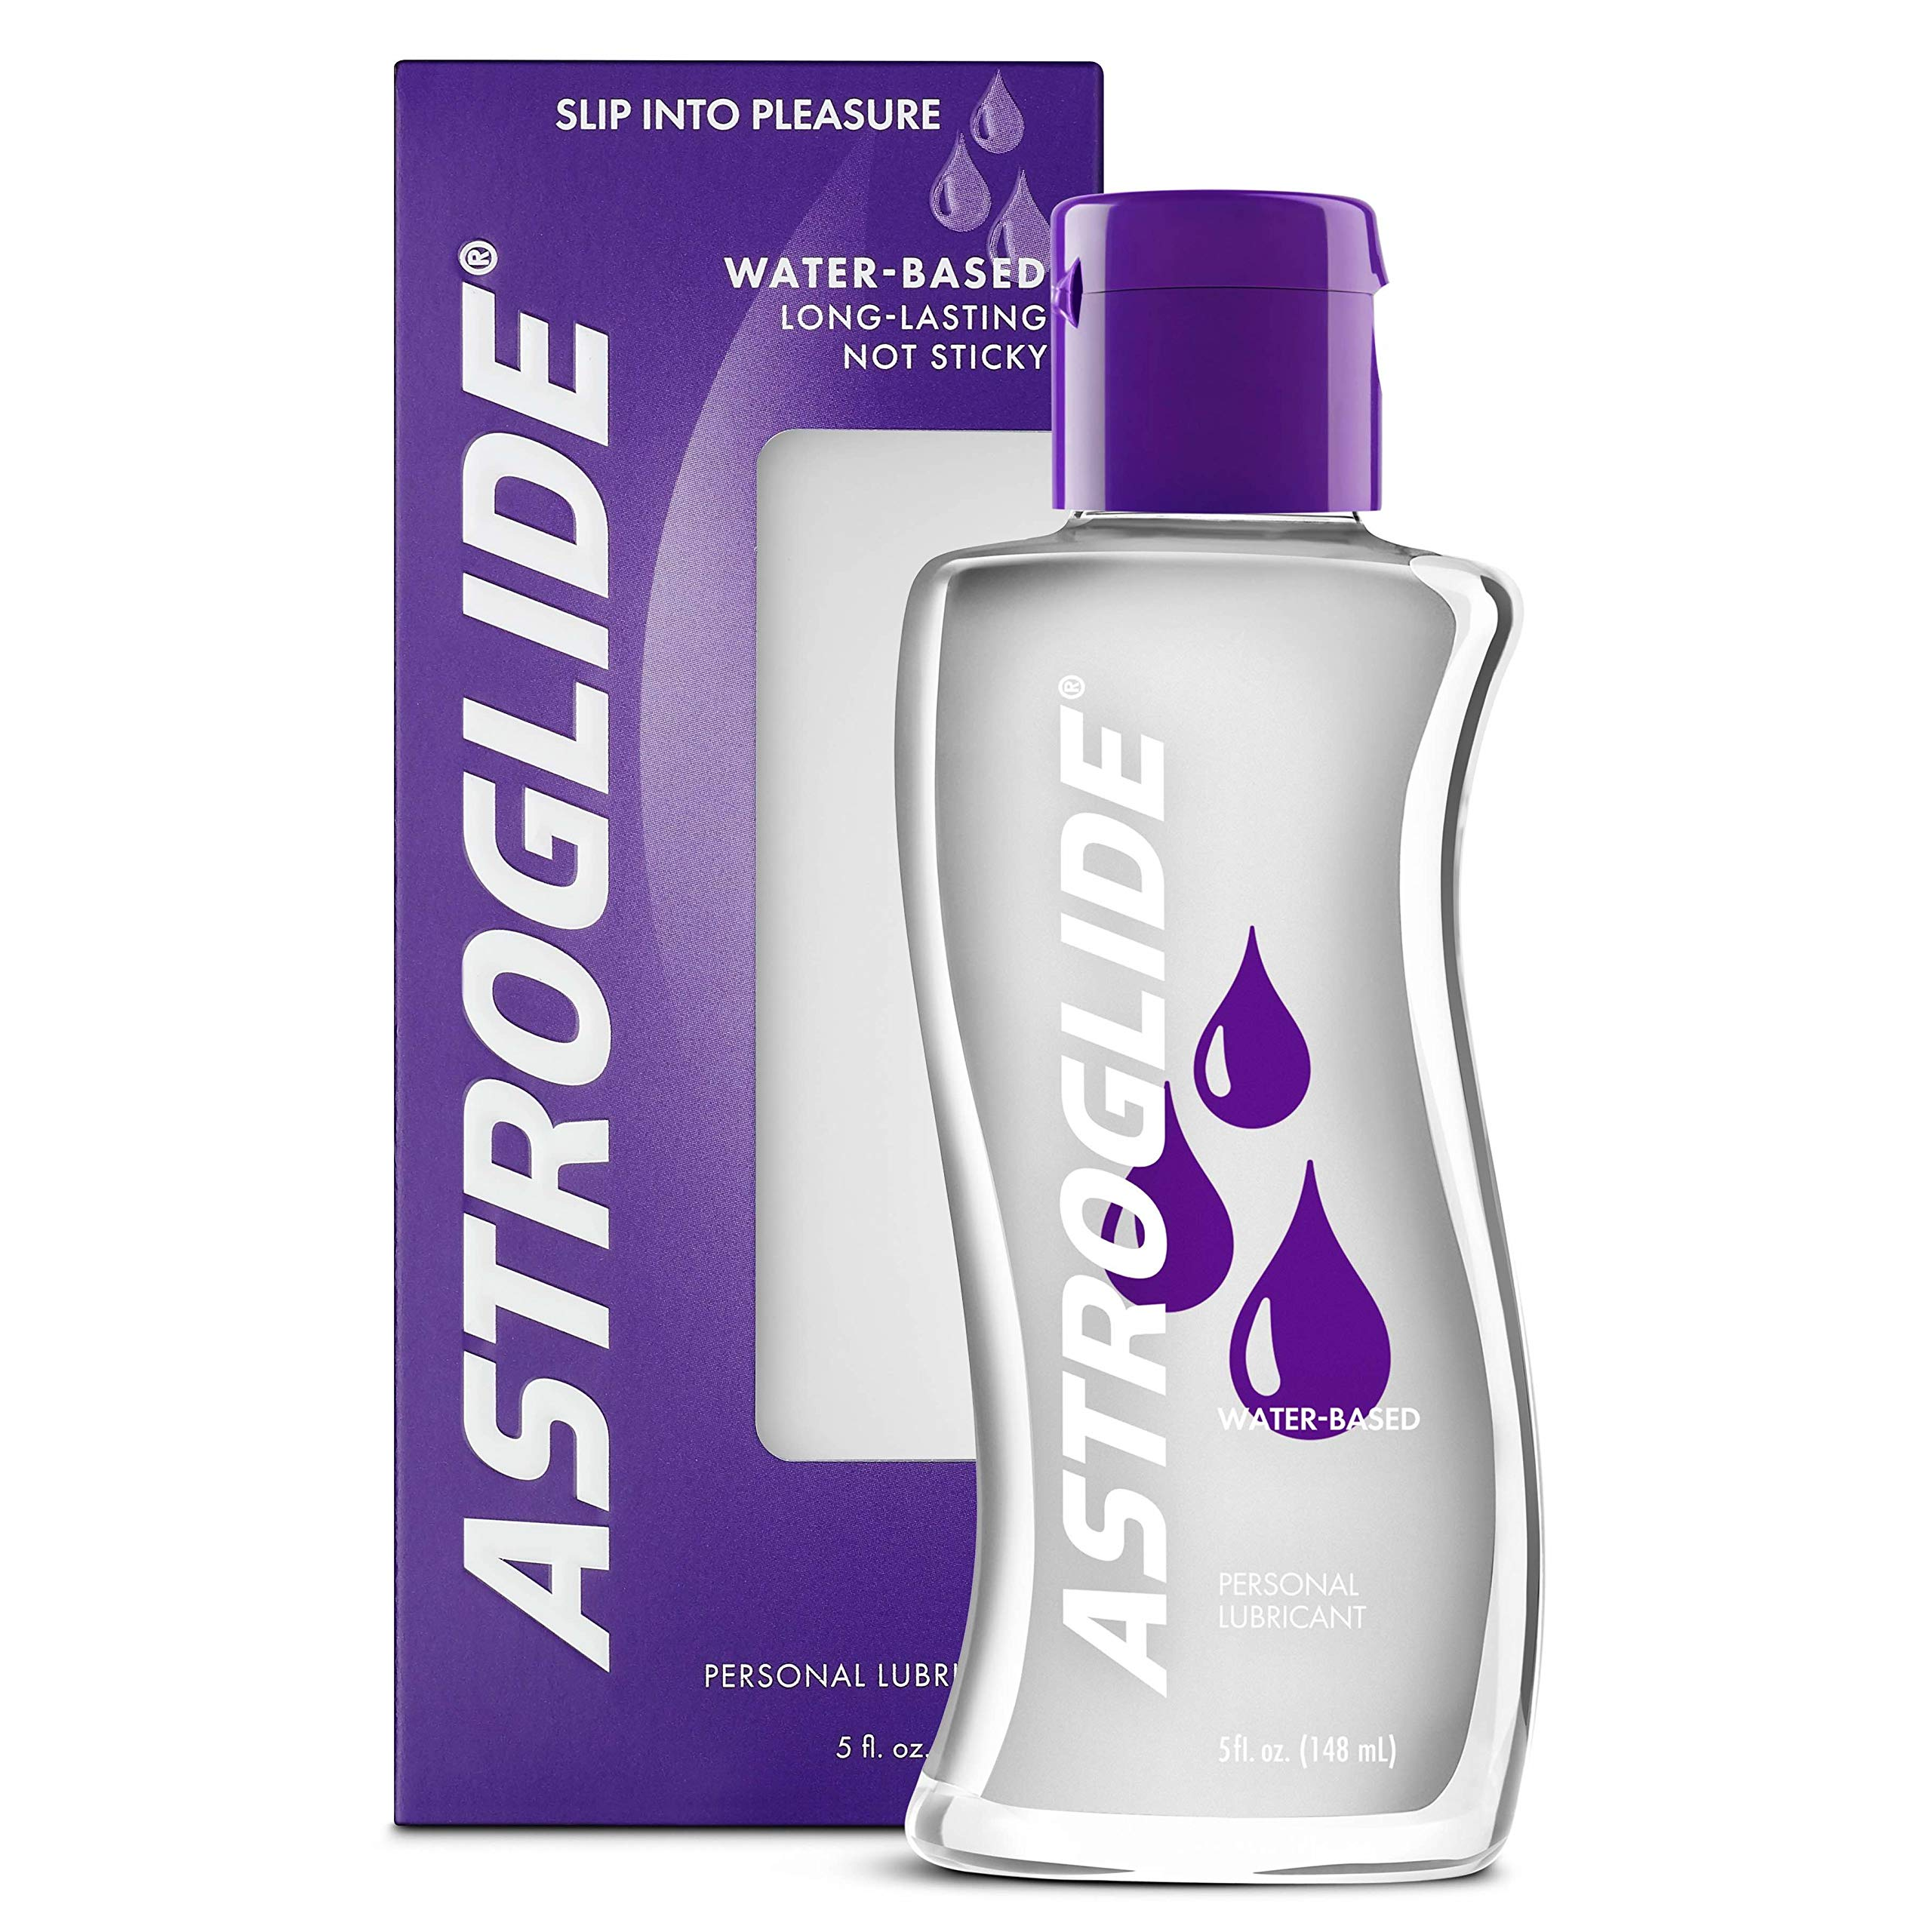 Astroglide Personal Lubricant - 5 oz Pack of 4 by Astroglide